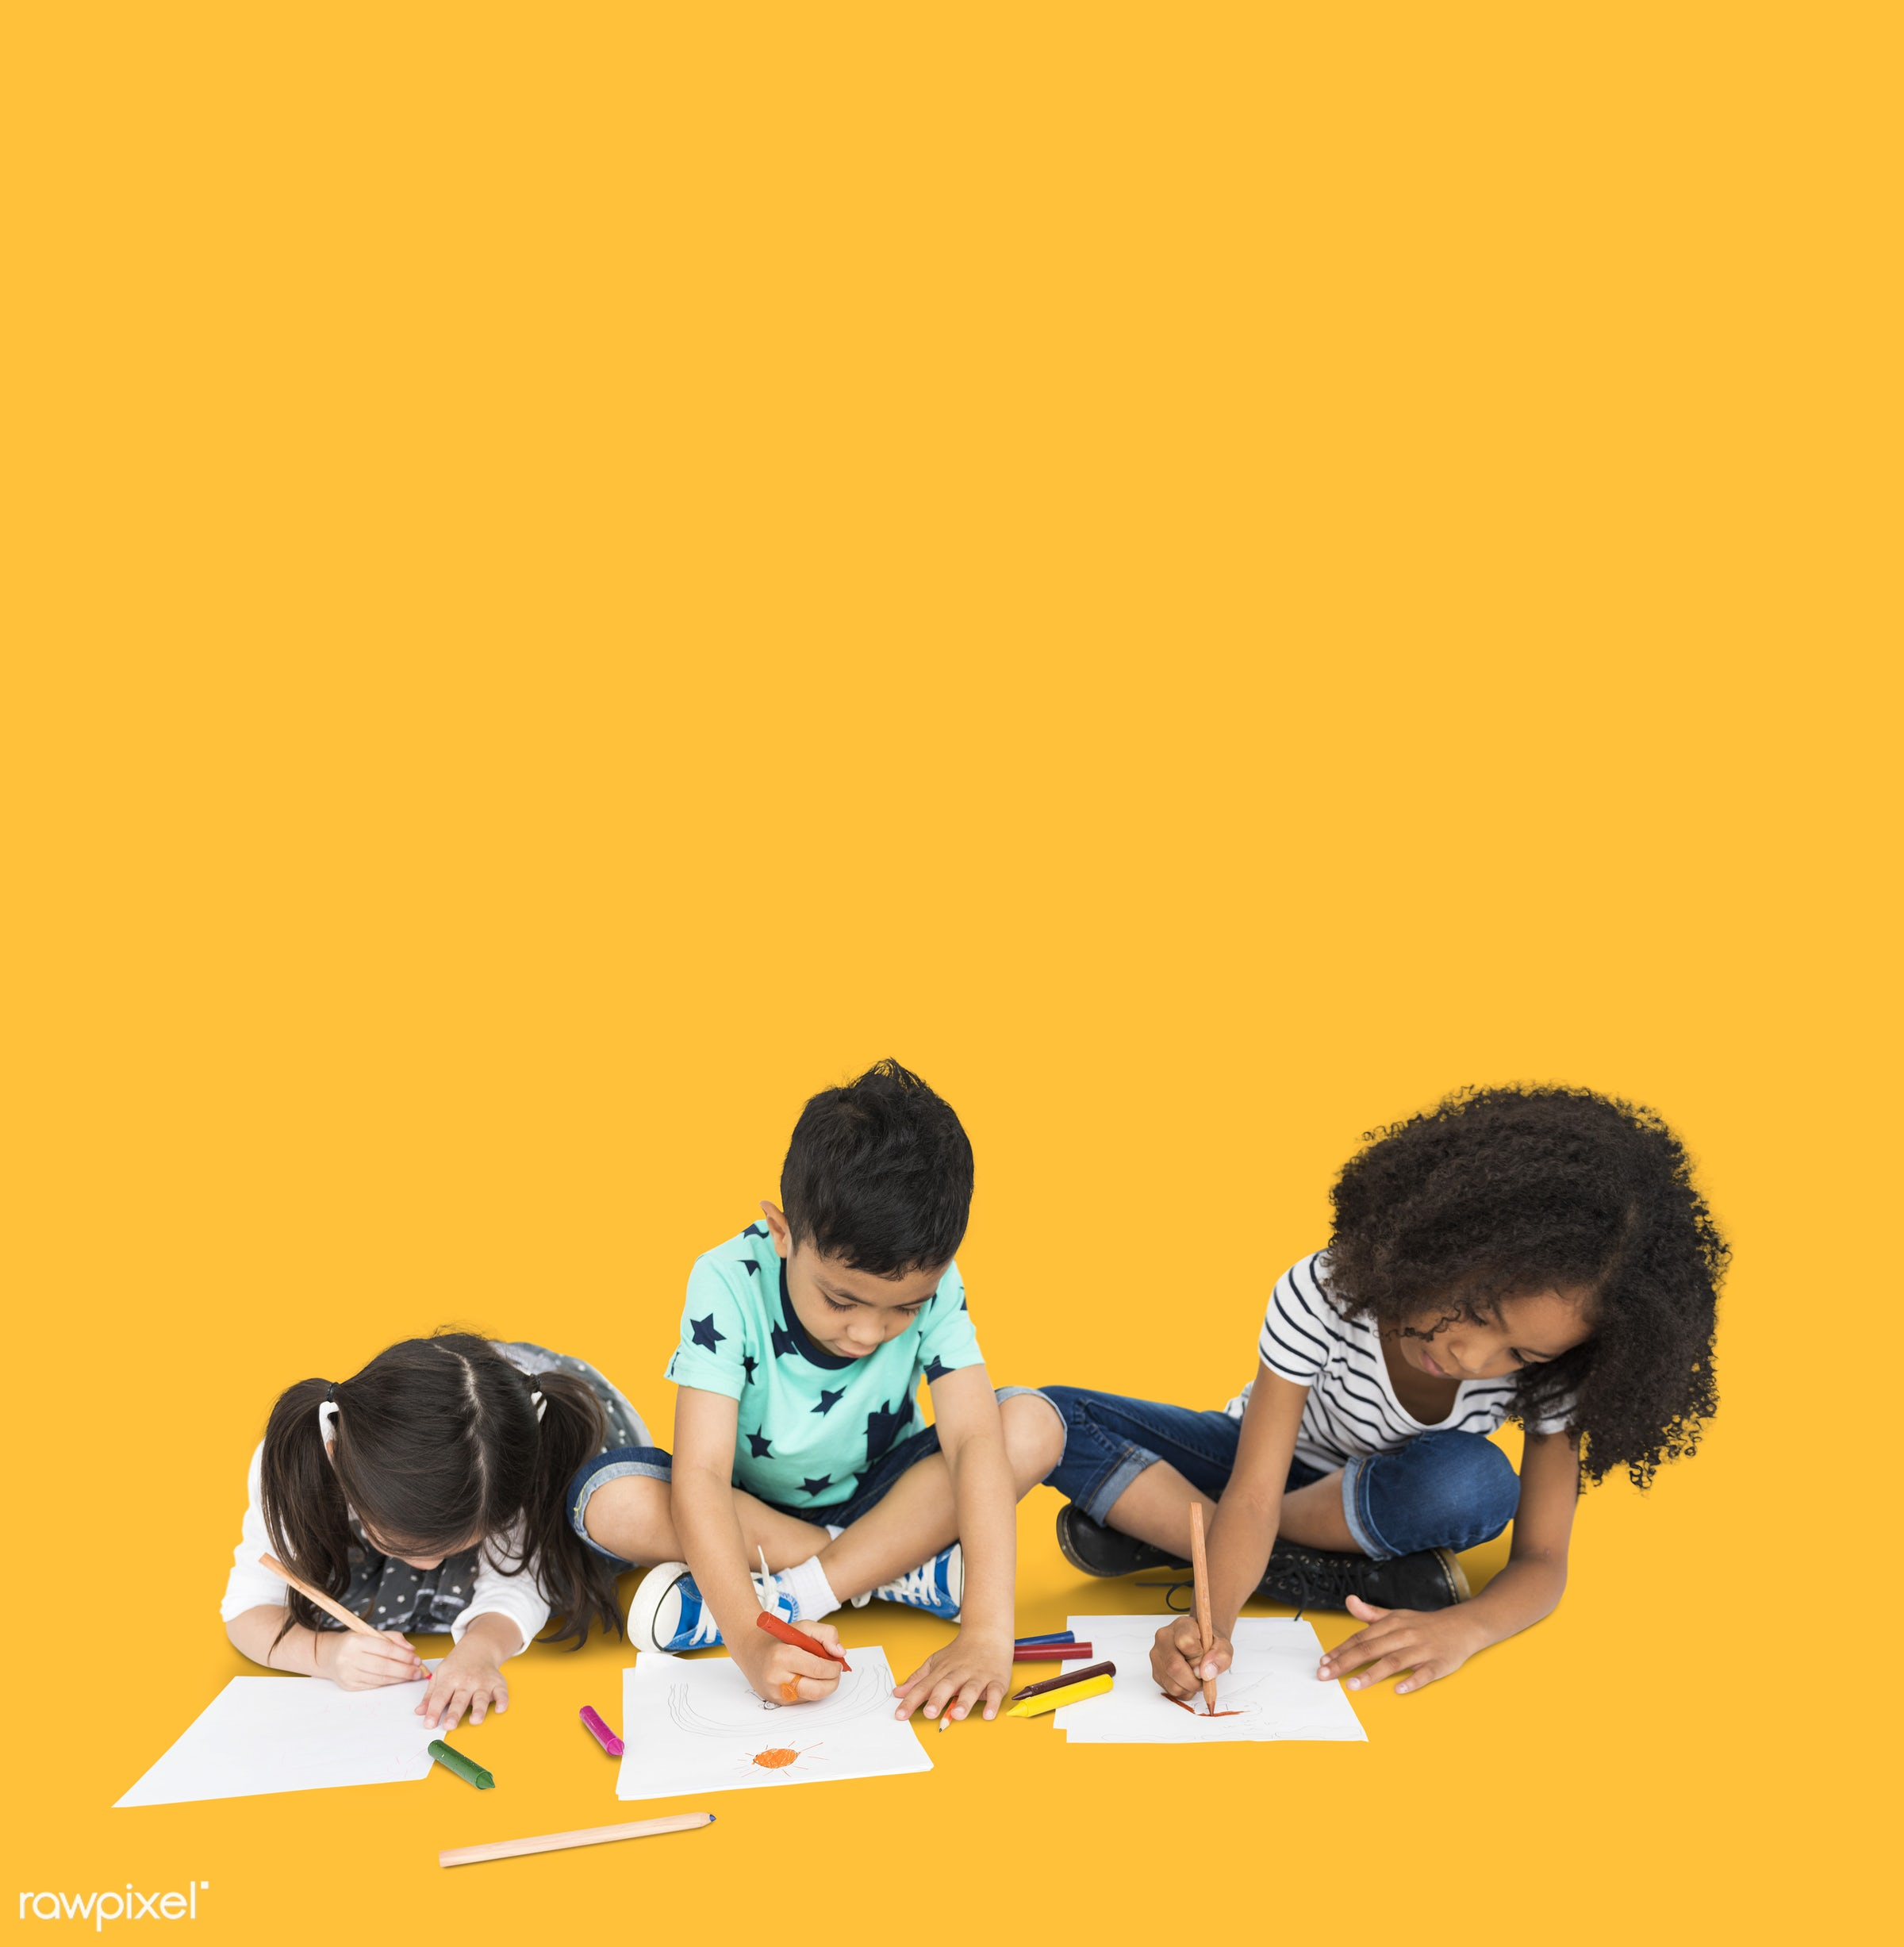 expression, studio, person, diverse, children, little, yellow, creativity, people, together, drawing, draw, pose, friends,...